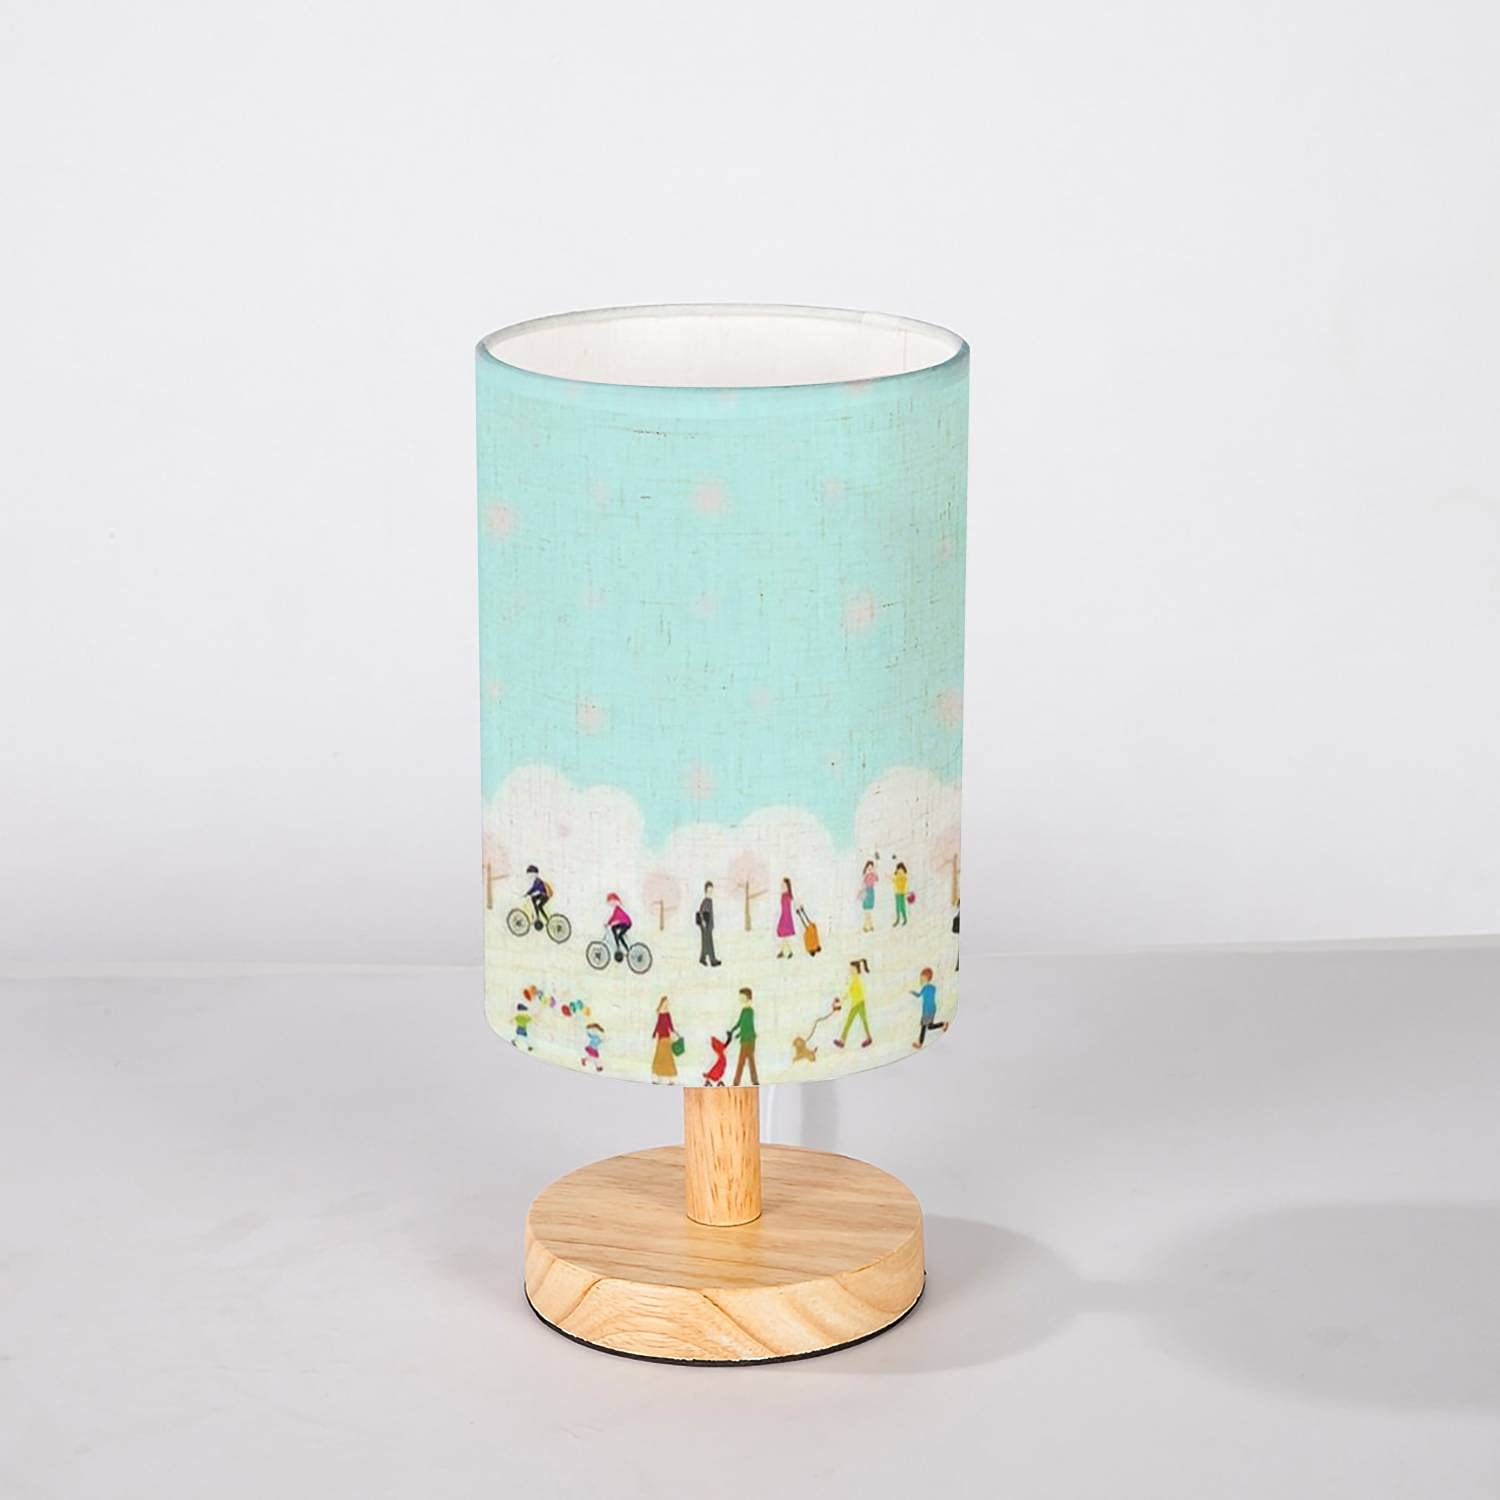 Minimalist depot High quality new Bedside Table Lamp Lifestyle and Cherry Blosso People